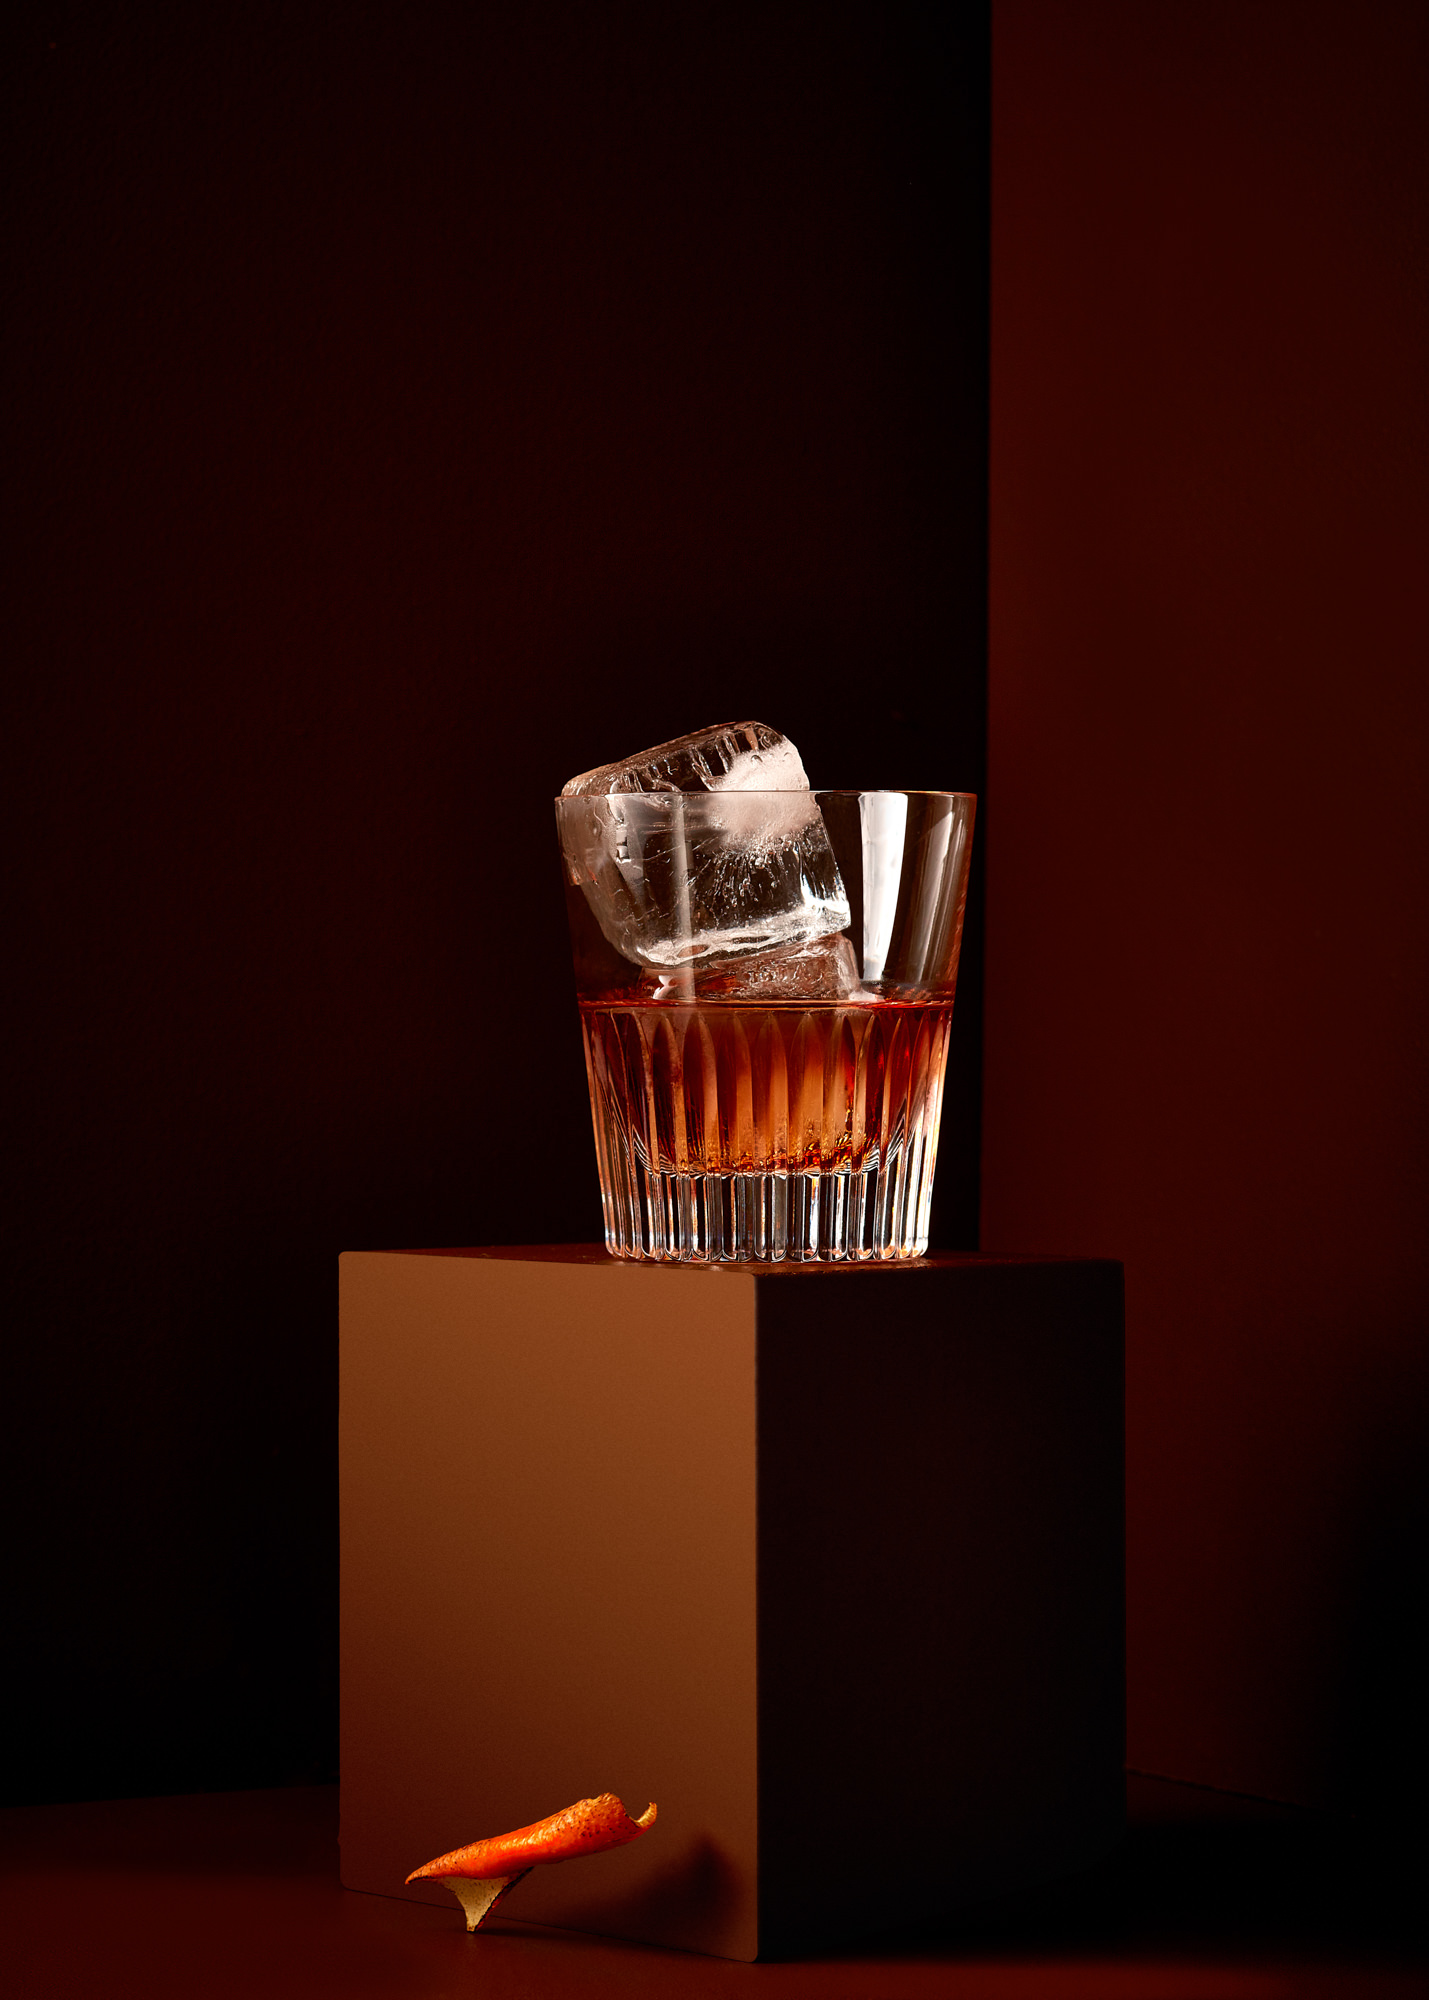 high end advert for cocktail photographer